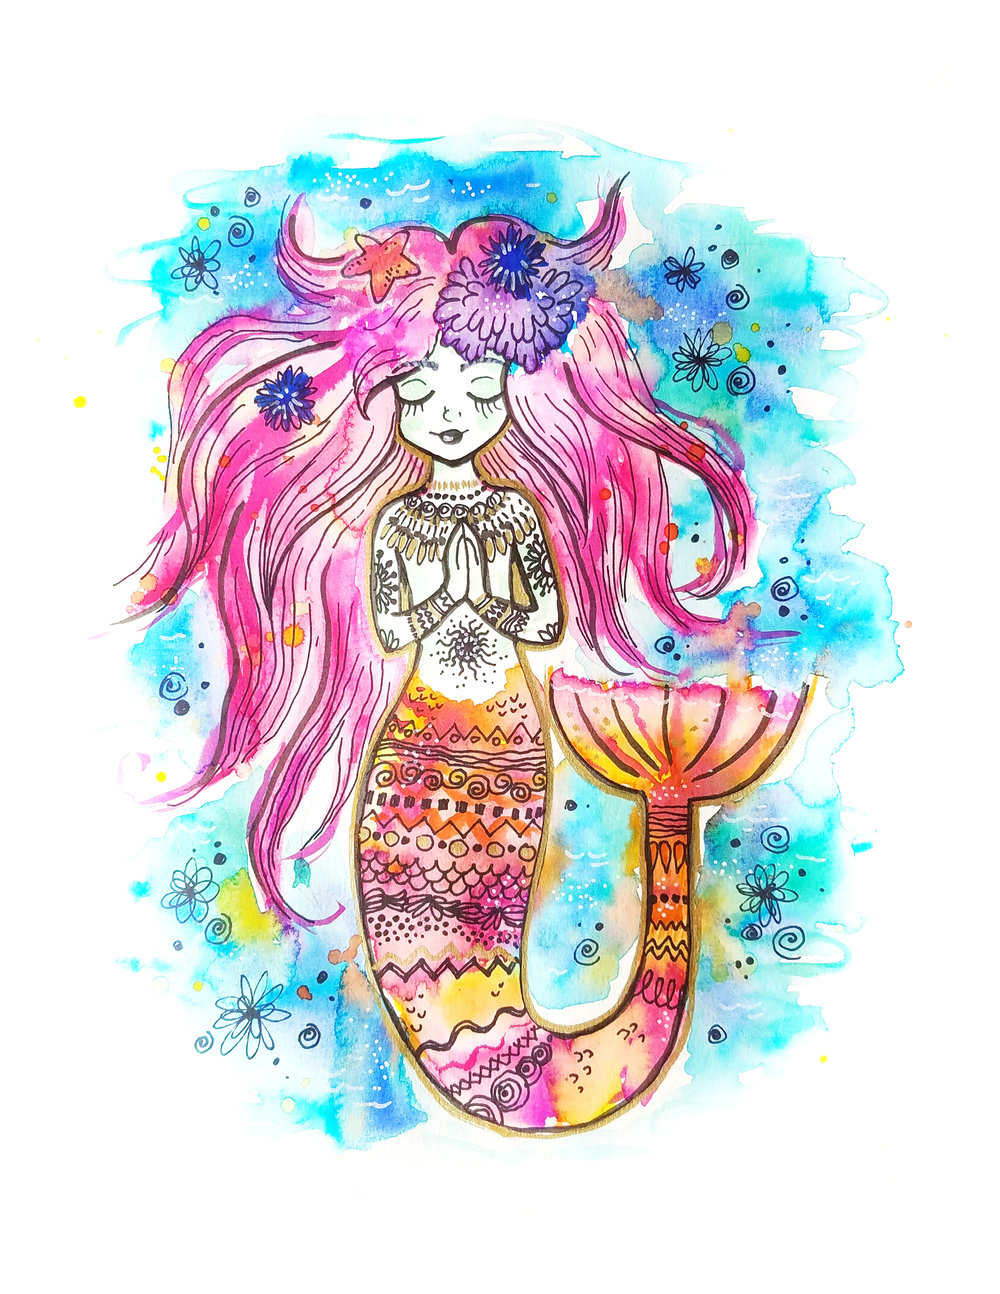 Namaste mermaid 8.5x11.jpg